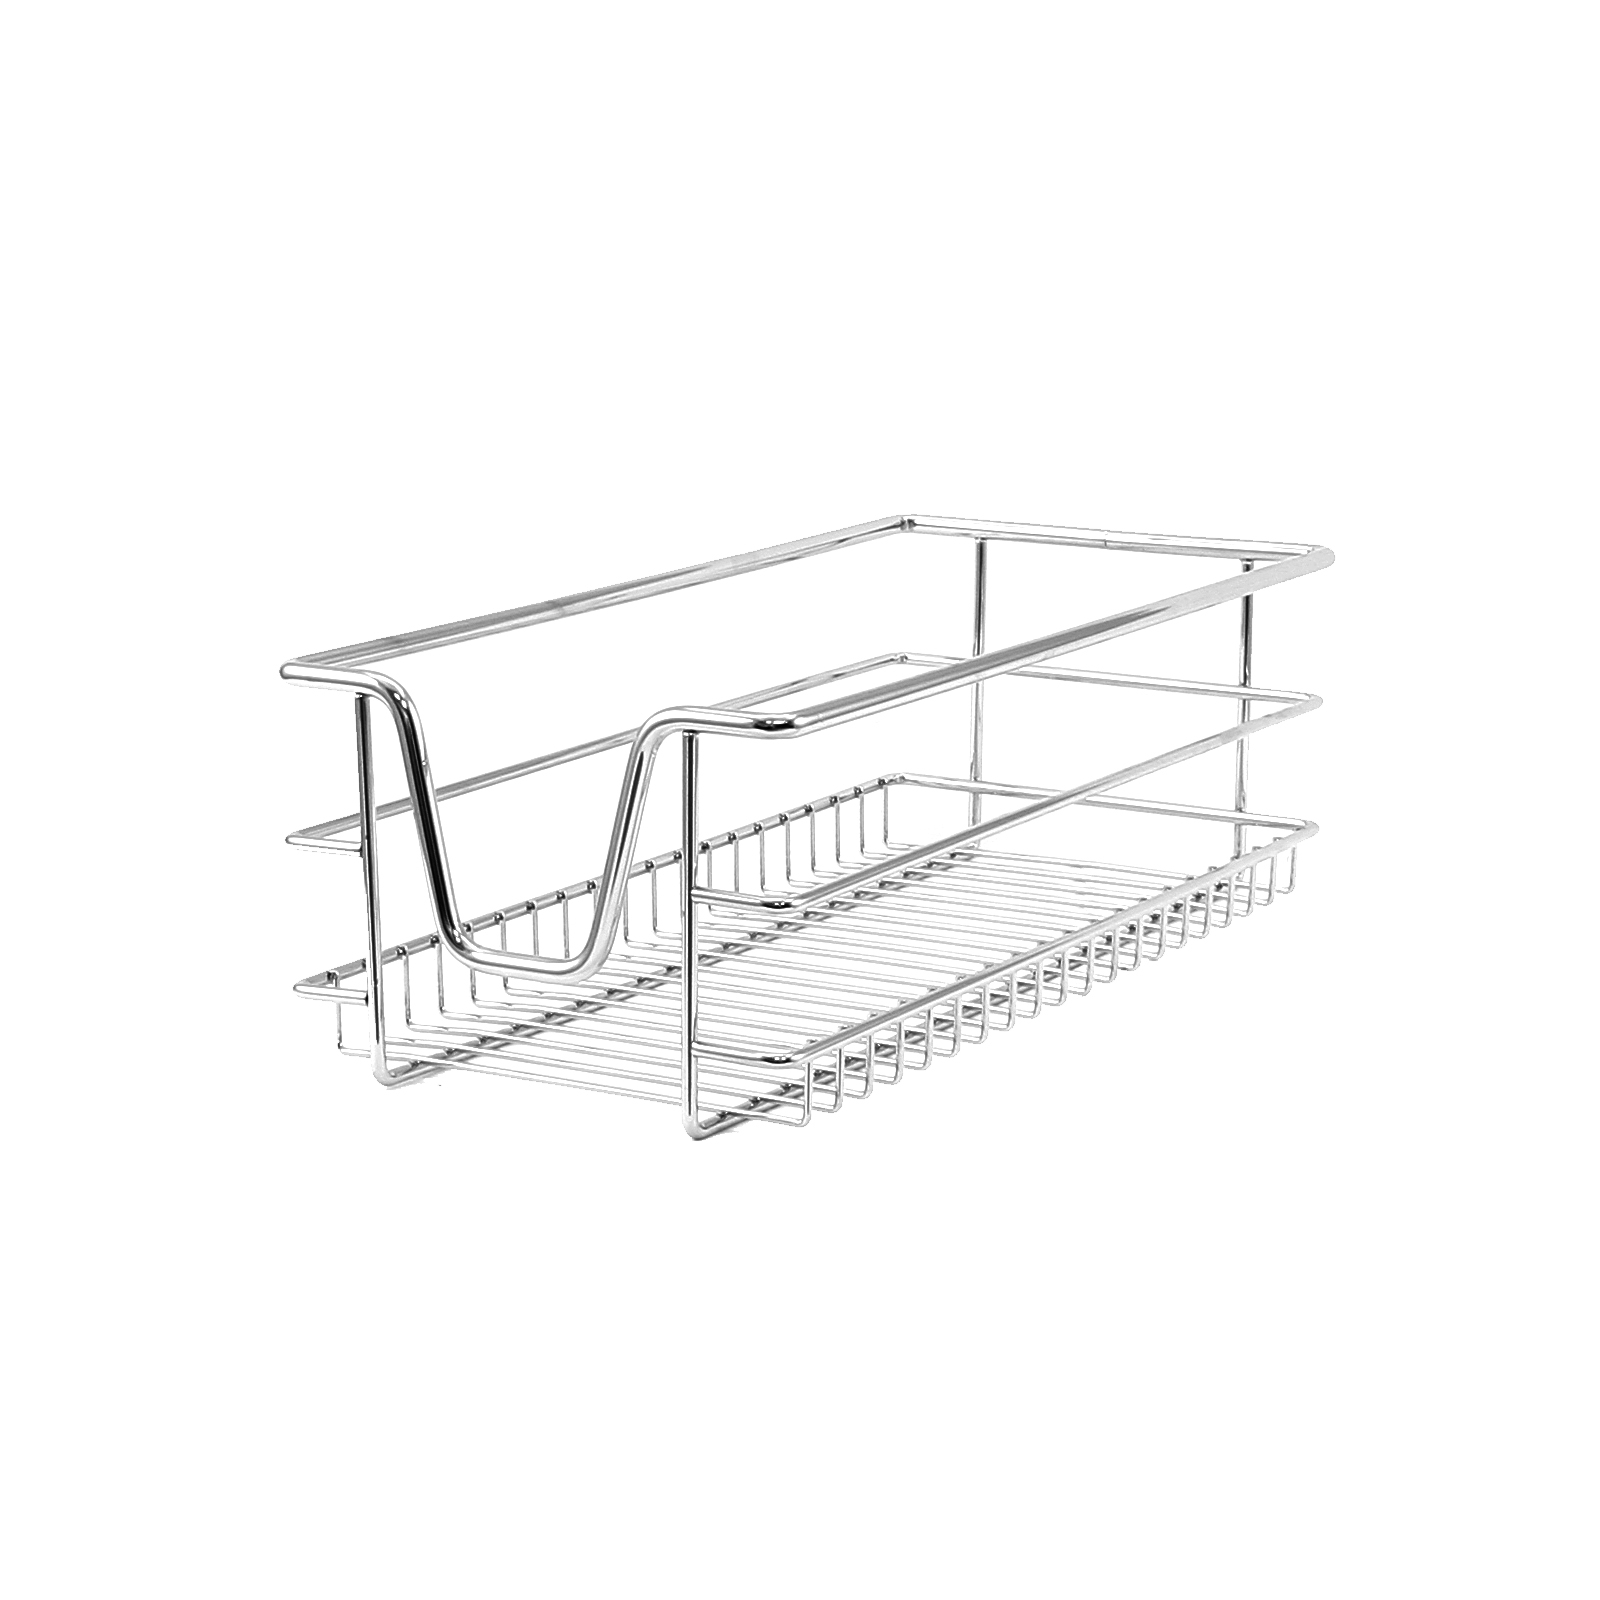 3 kitchen wire baskets pull out storage drawer slide out larder cupboard 30cm ebay. Black Bedroom Furniture Sets. Home Design Ideas